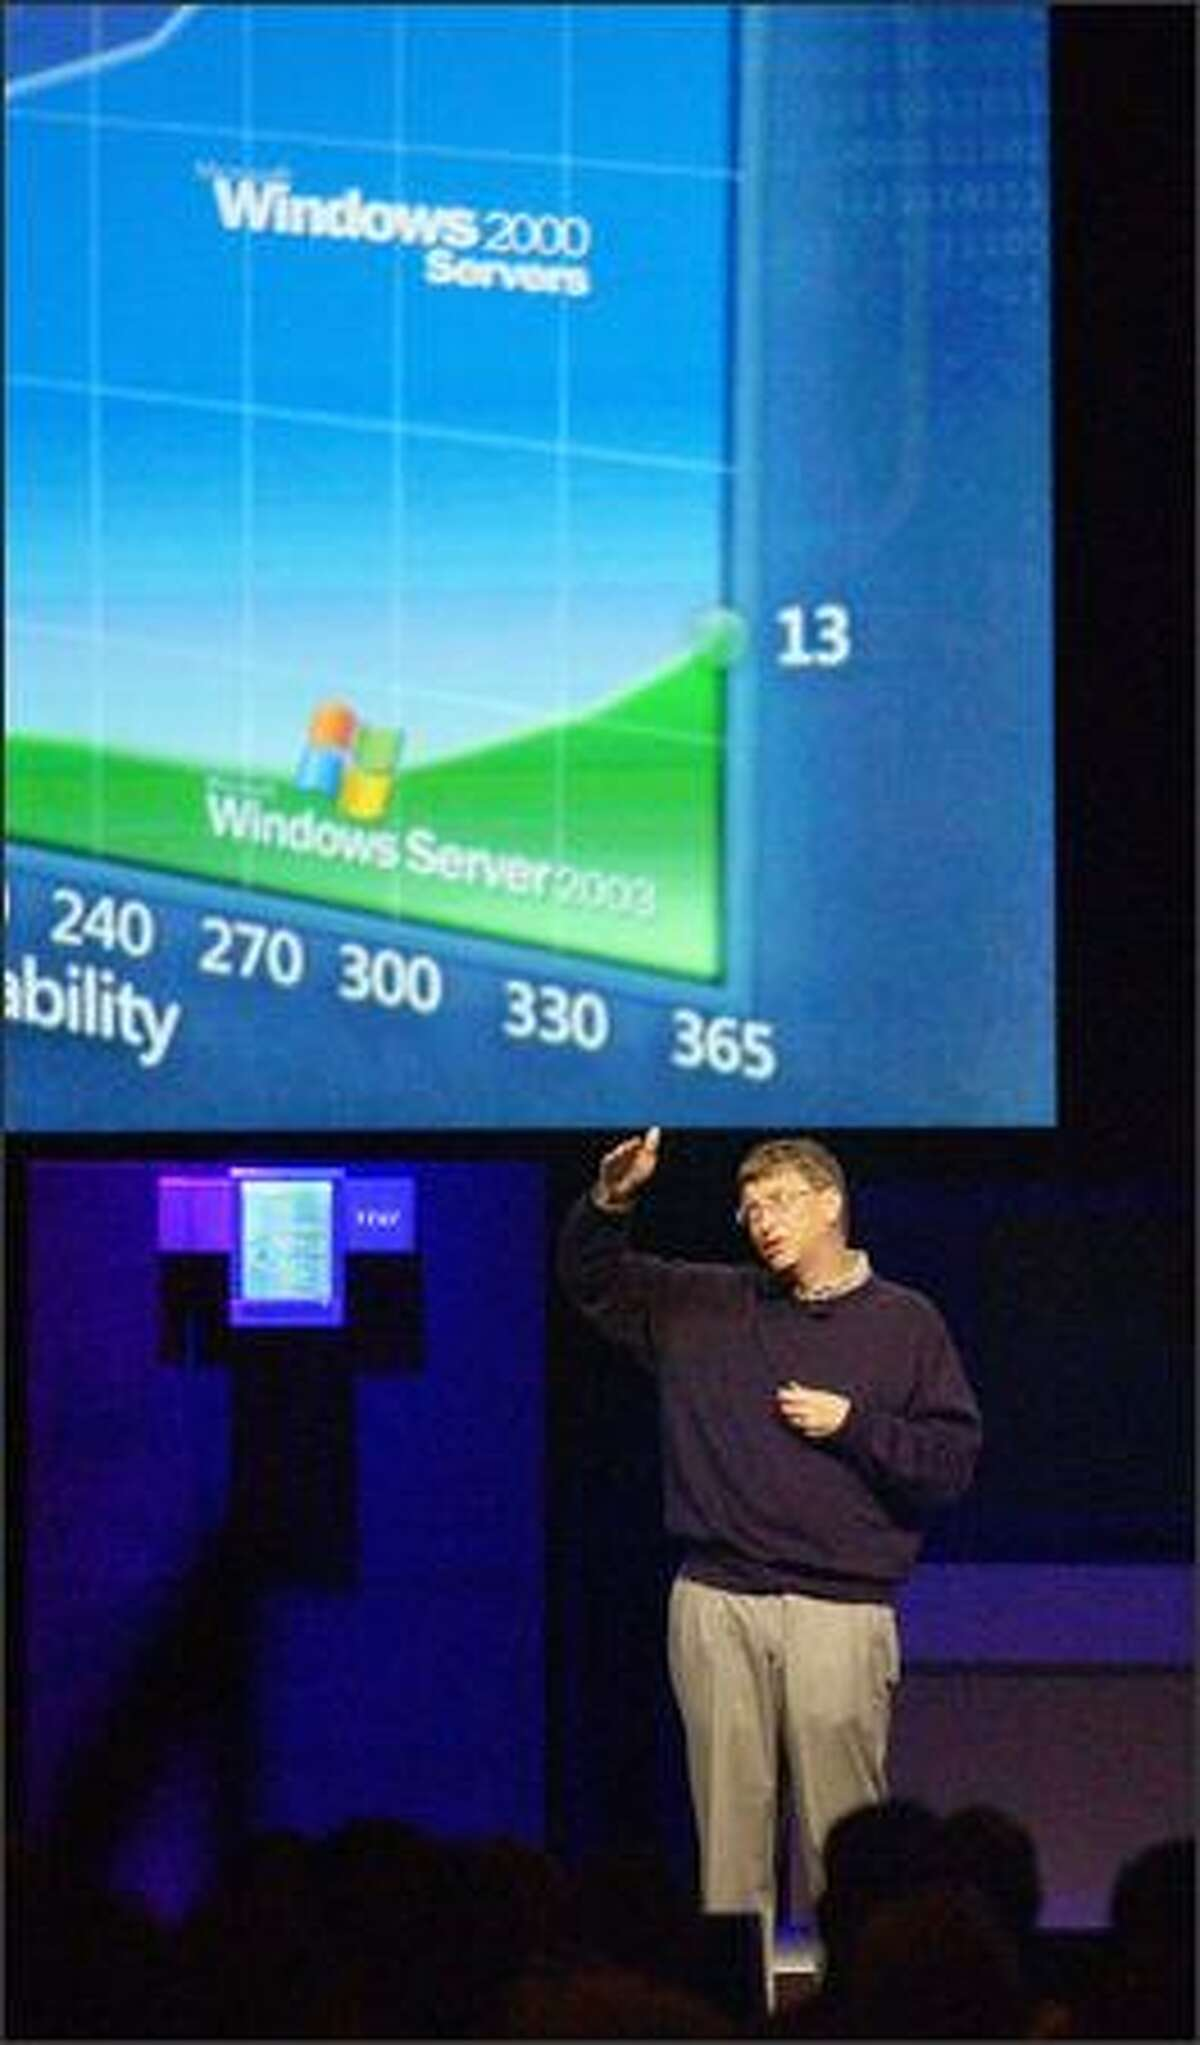 Bill Gates addresses the annual Windows Hardware Engineering Conference yesterday. He eulogized a major computing component, saying